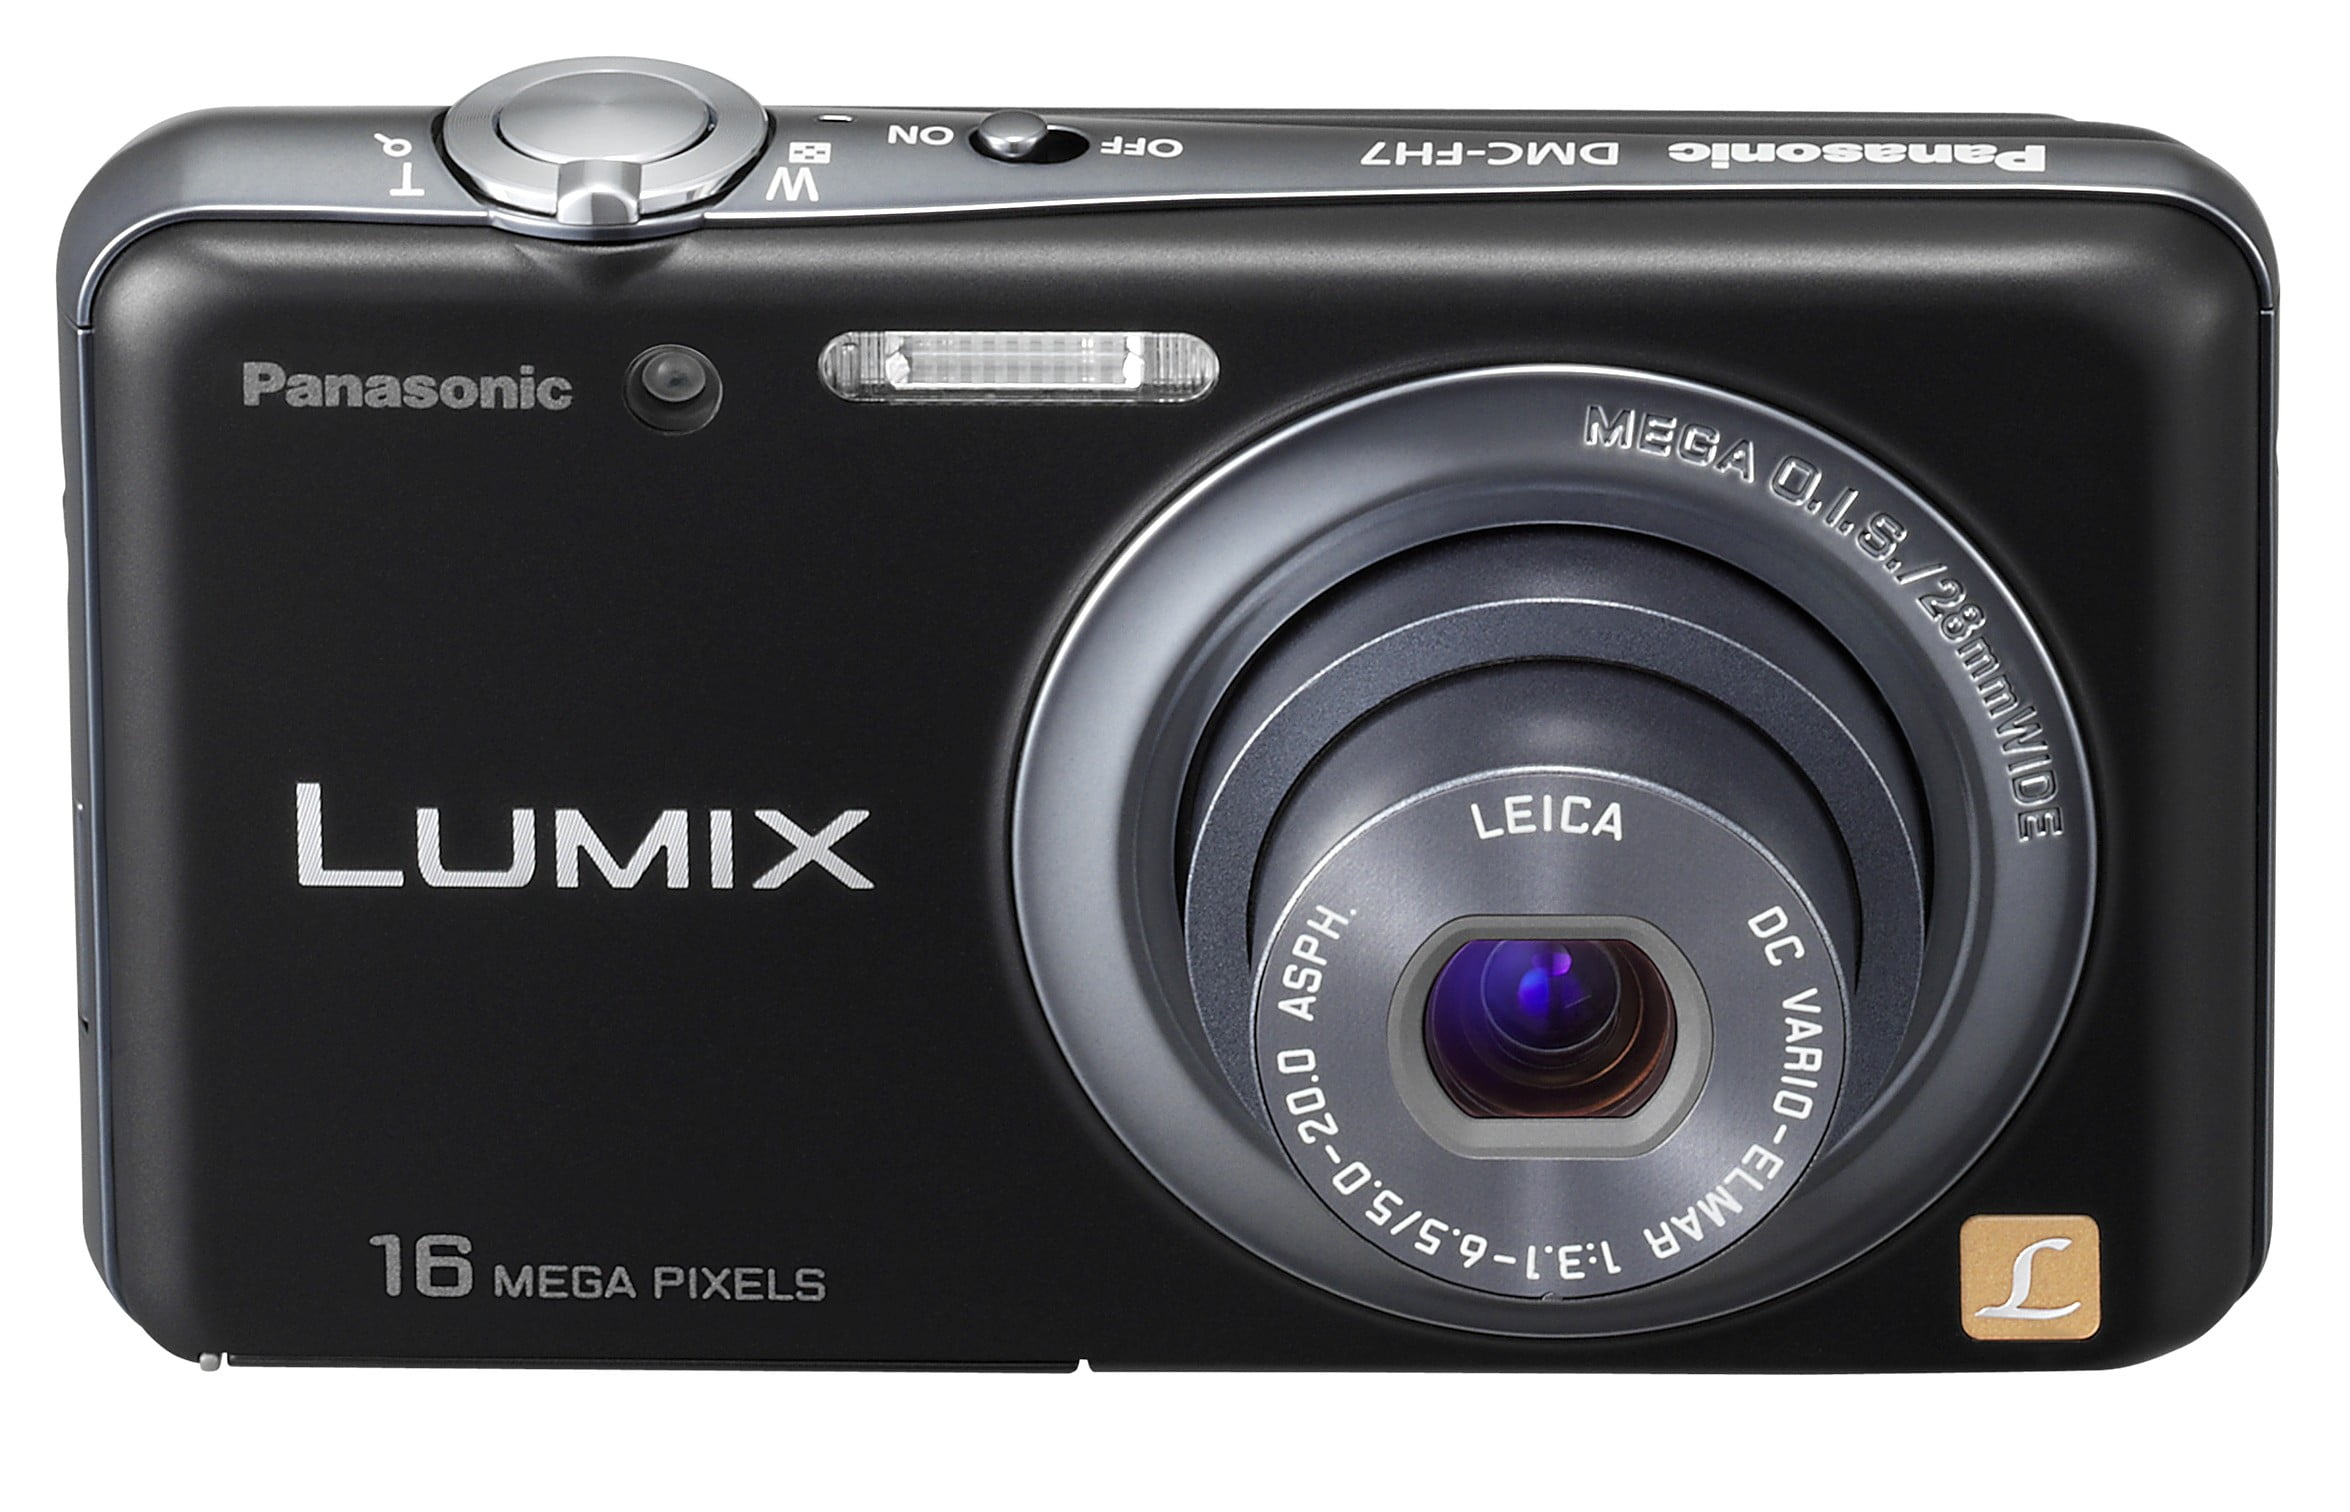 panasonic lumix g3 gets viewfinder and 1080p fh7 goes full touch rh digitaltrends com panasonic lumix g3 user manual panasonic lumix dmc g3 user guide